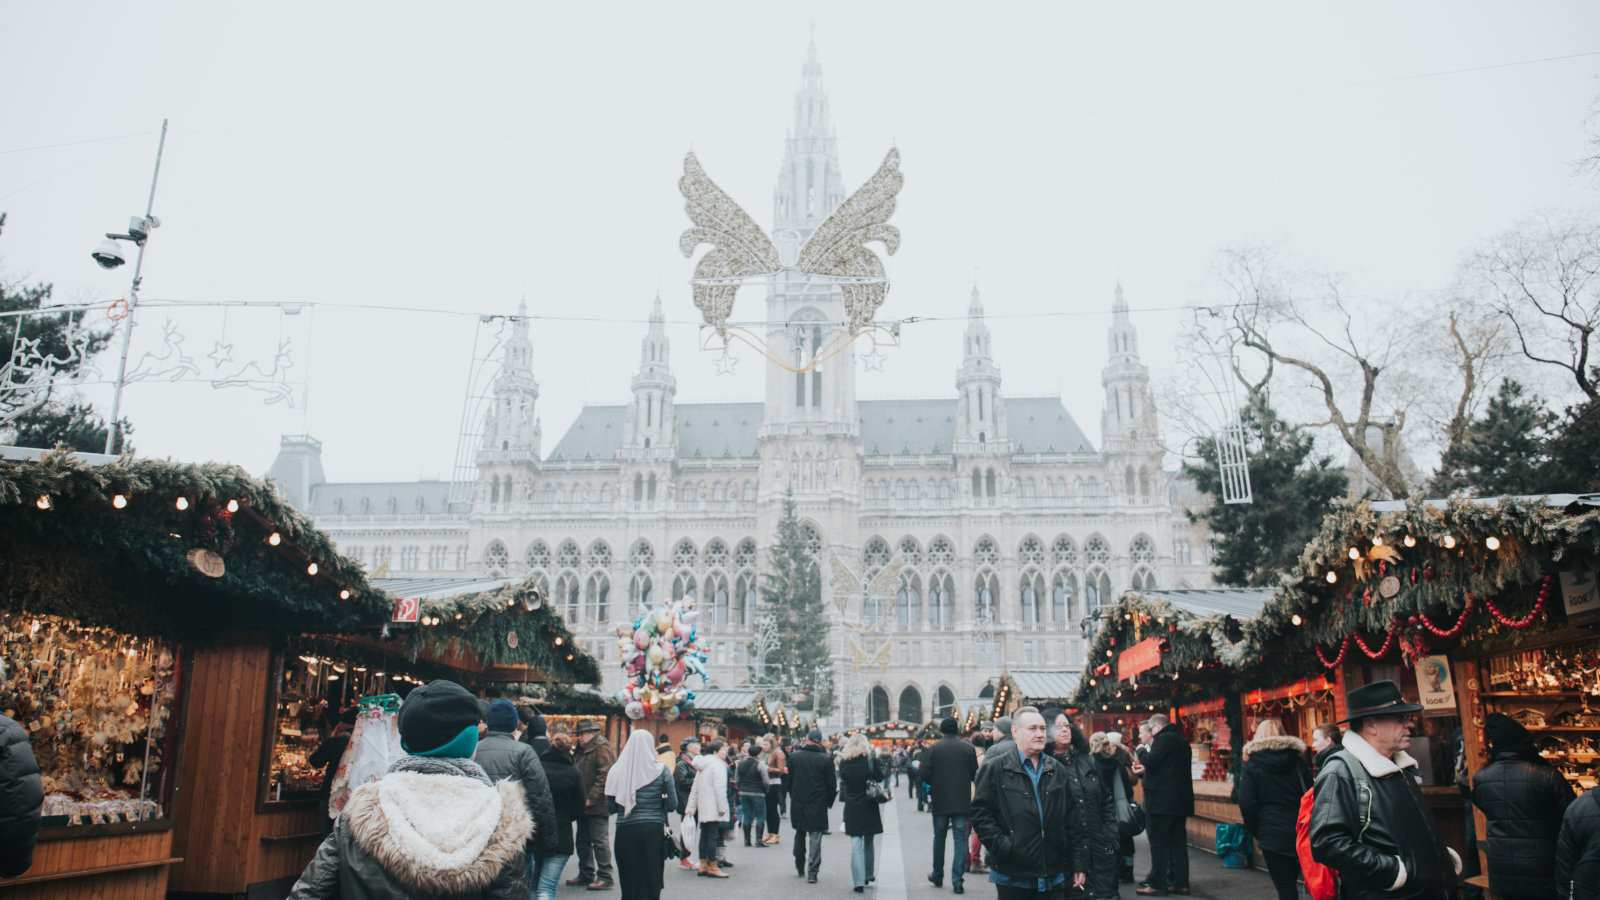 See the best of Europe's Christmas markets on an LGBT Christmas market river cruise